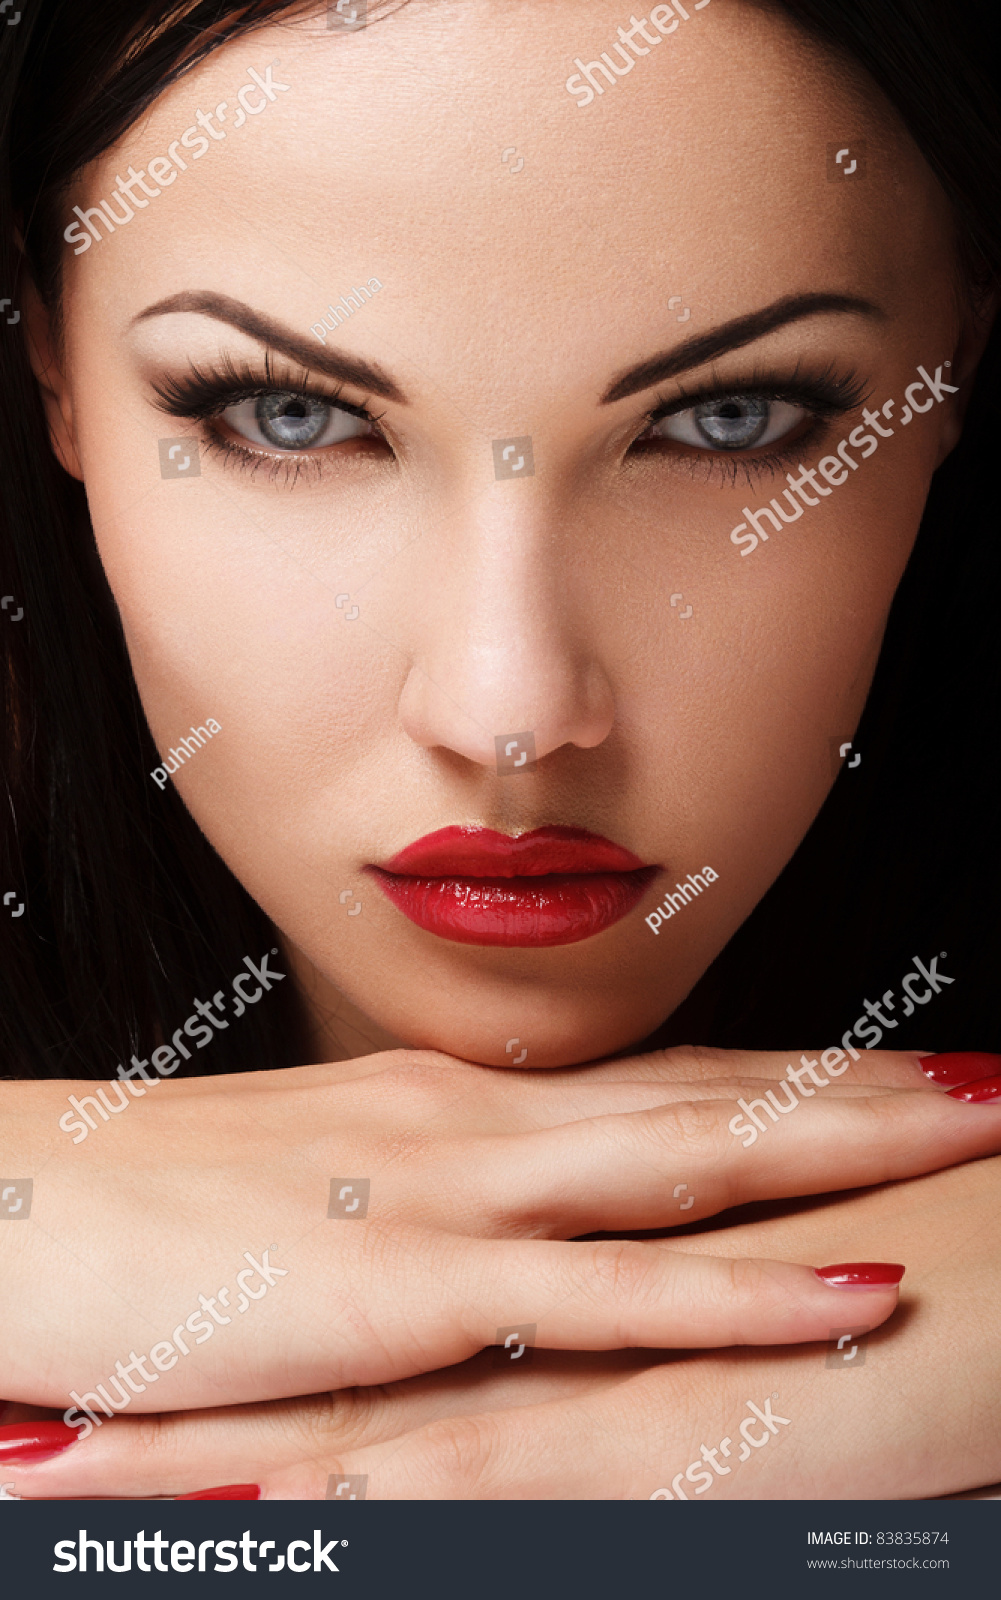 Portrait Of Beautiful Woman With Red Lips. Nice Makeup